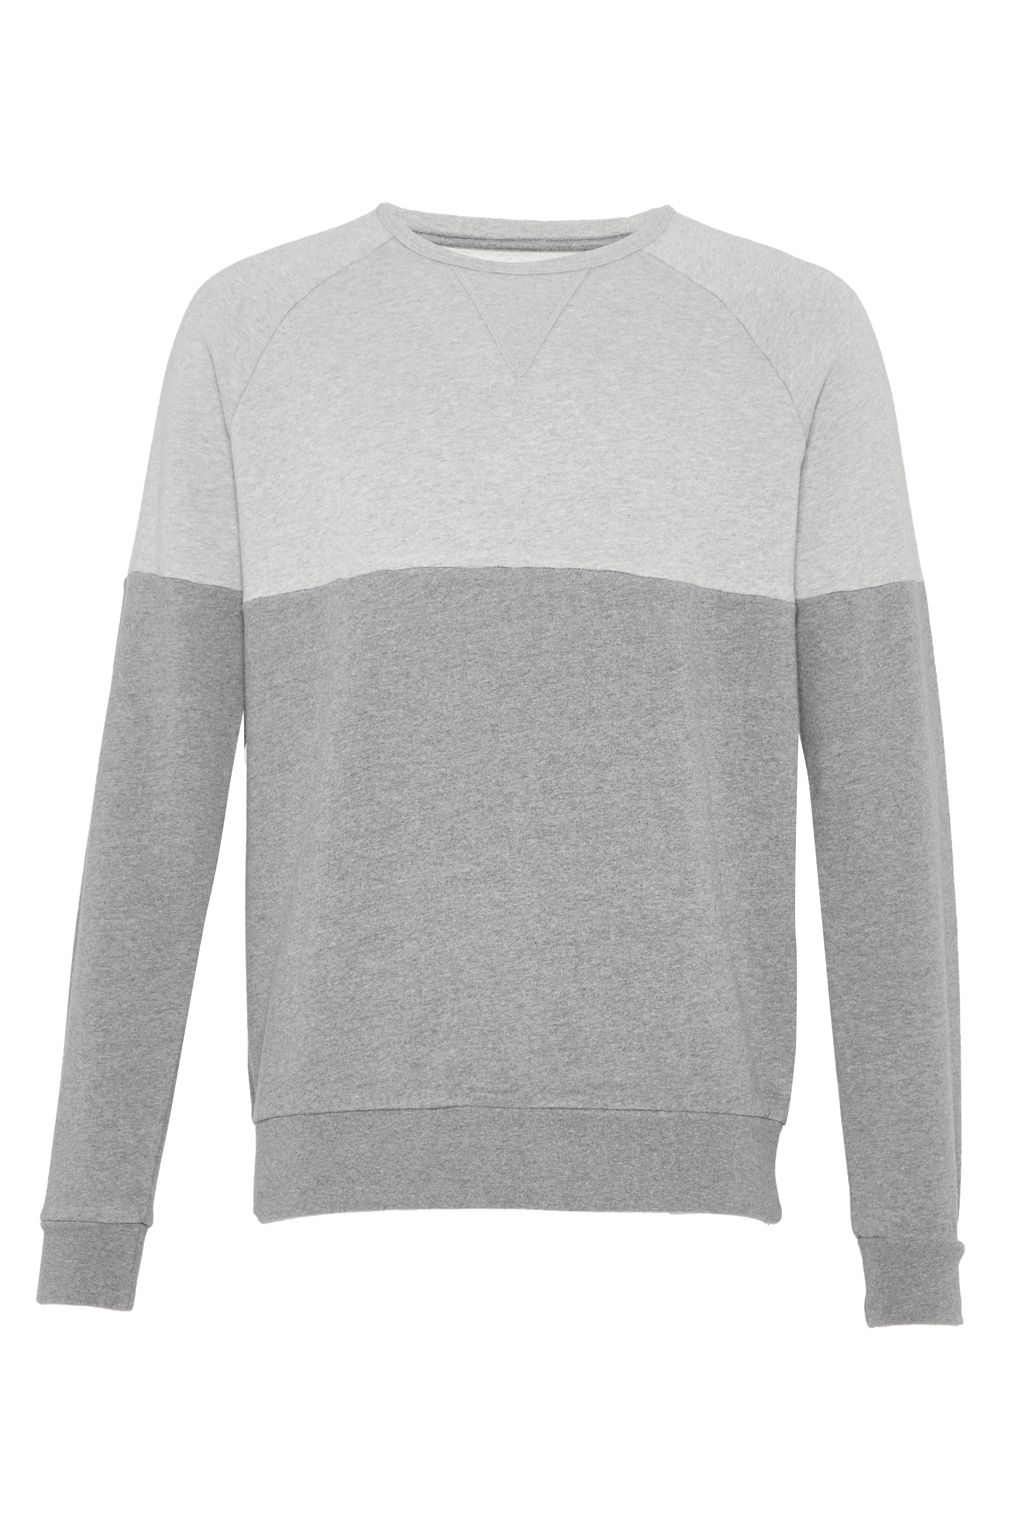 Men's French Connection Multi Melange Hoody Sweatshirt, Mid Grey Marl